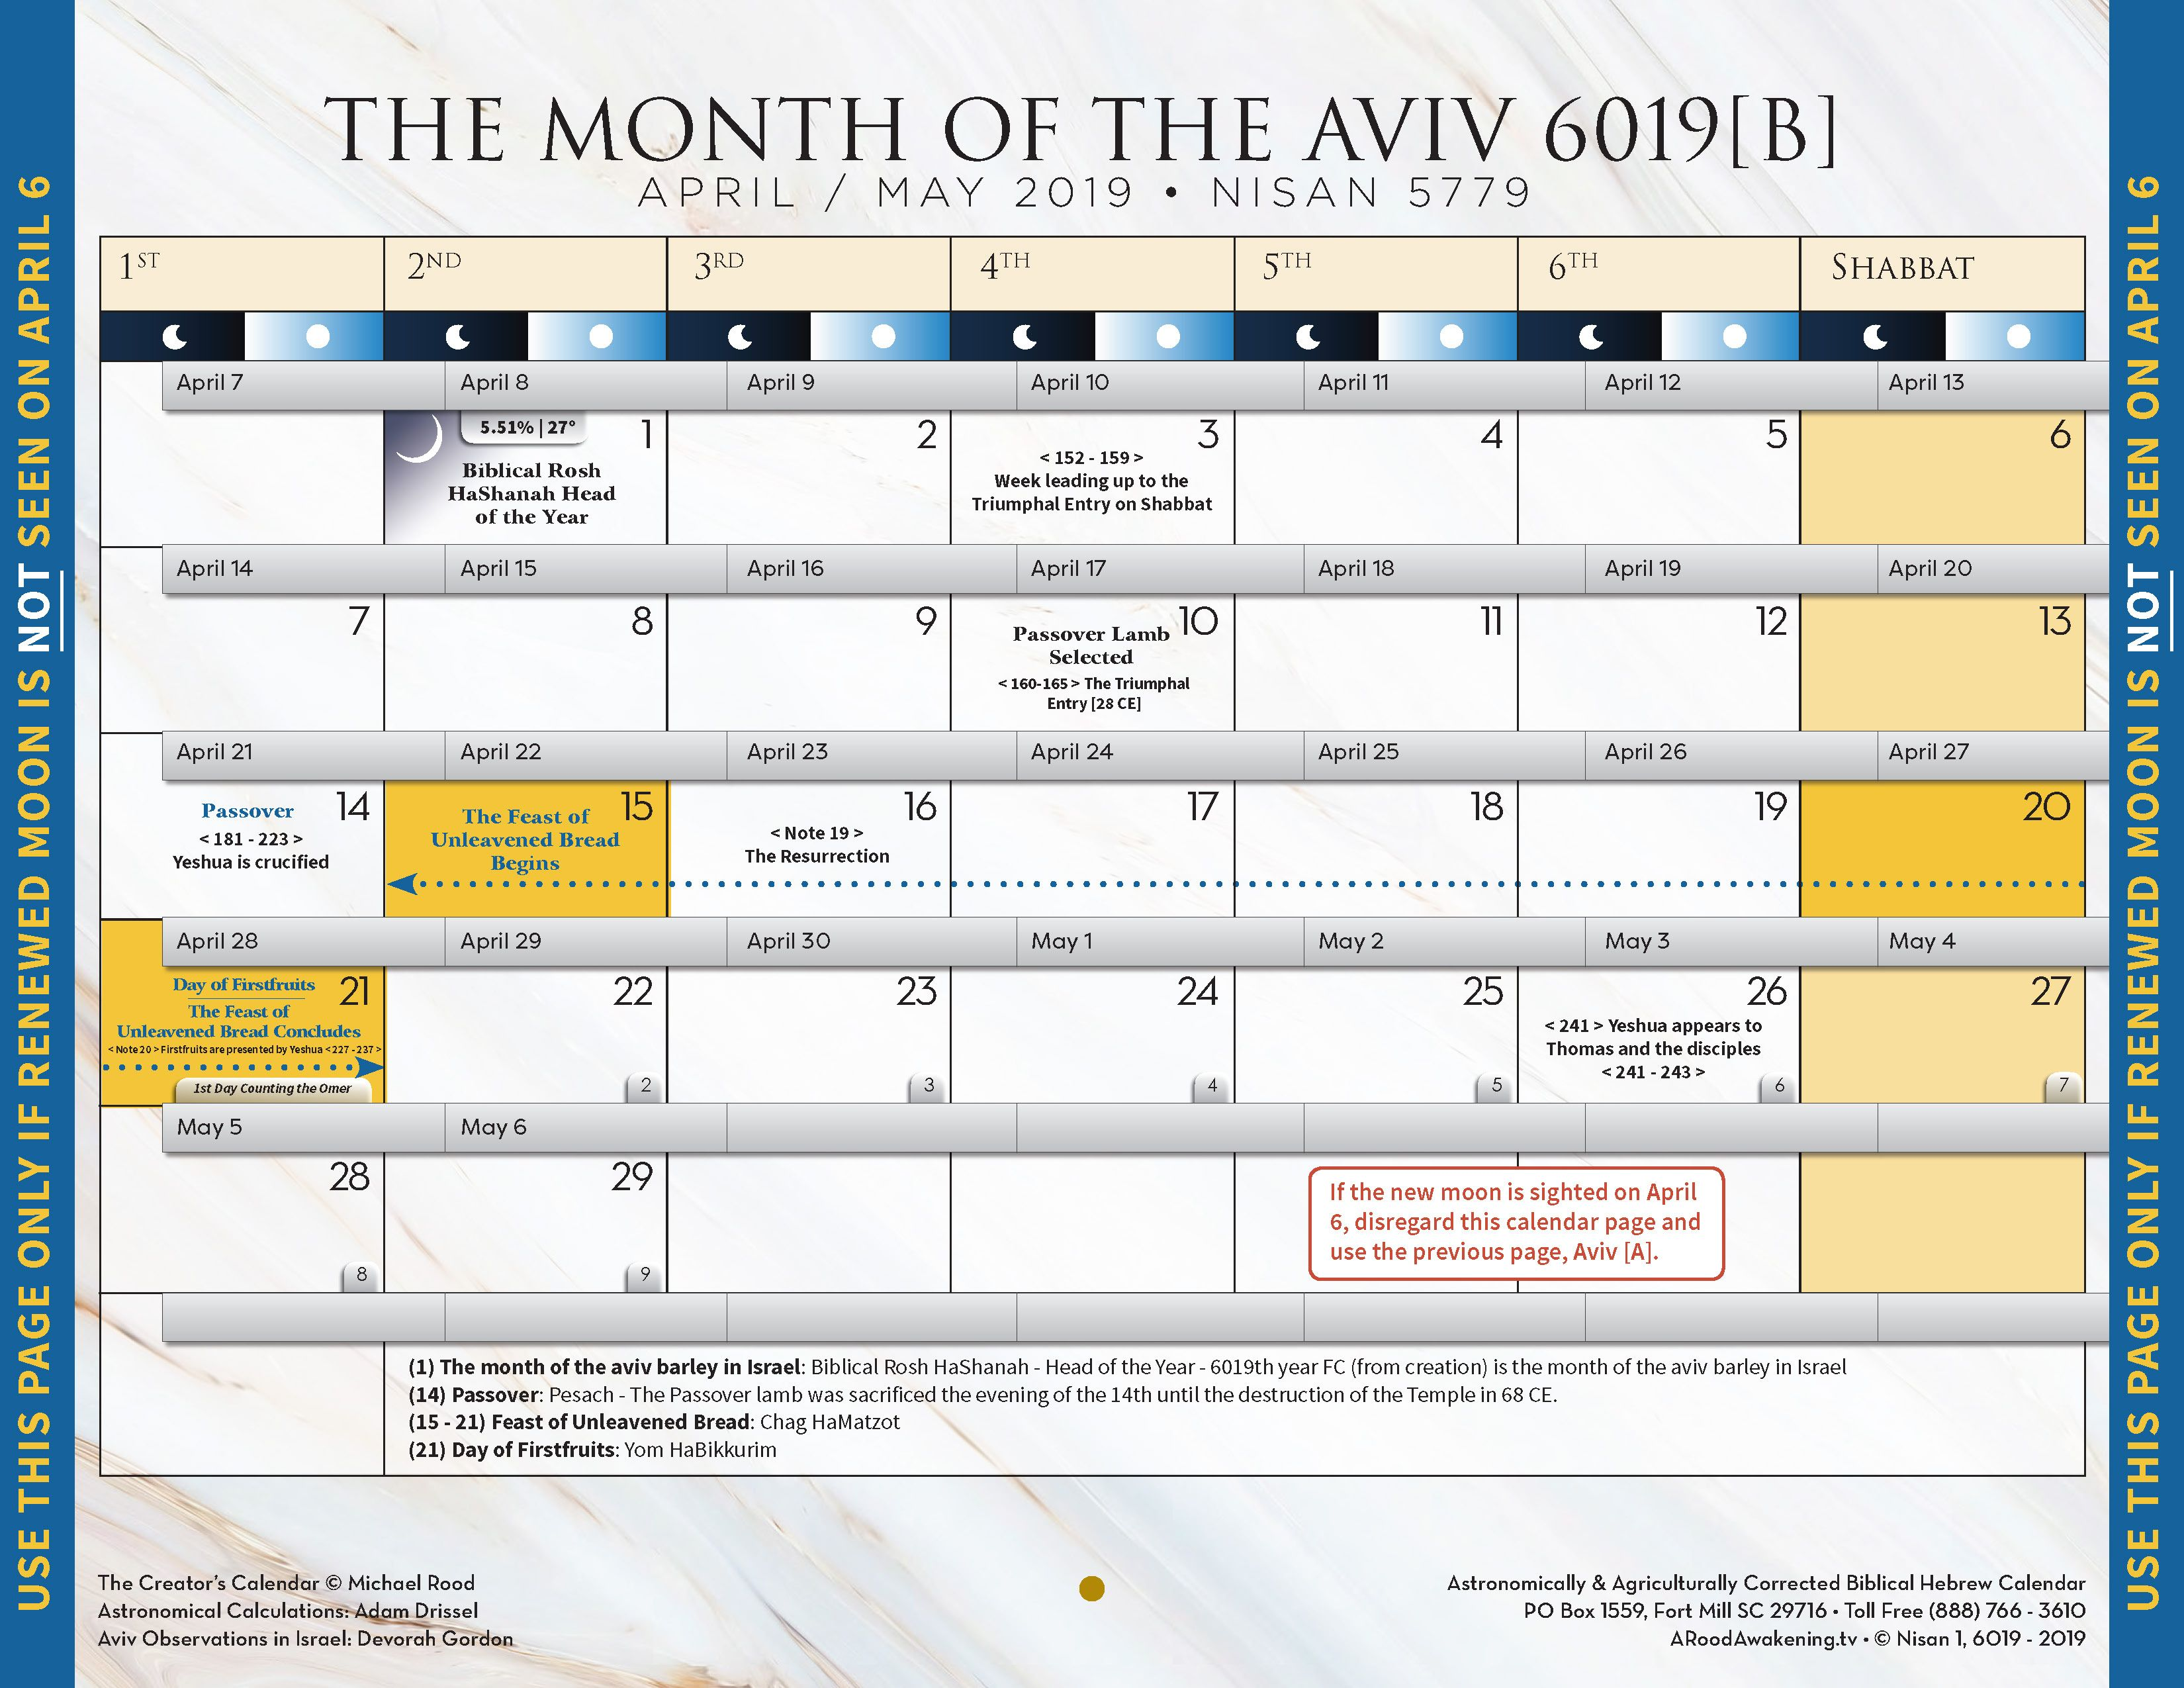 THE MONTH OF THE AVIV 6019 - APRIL / MAY 2019 - NISAN 5779